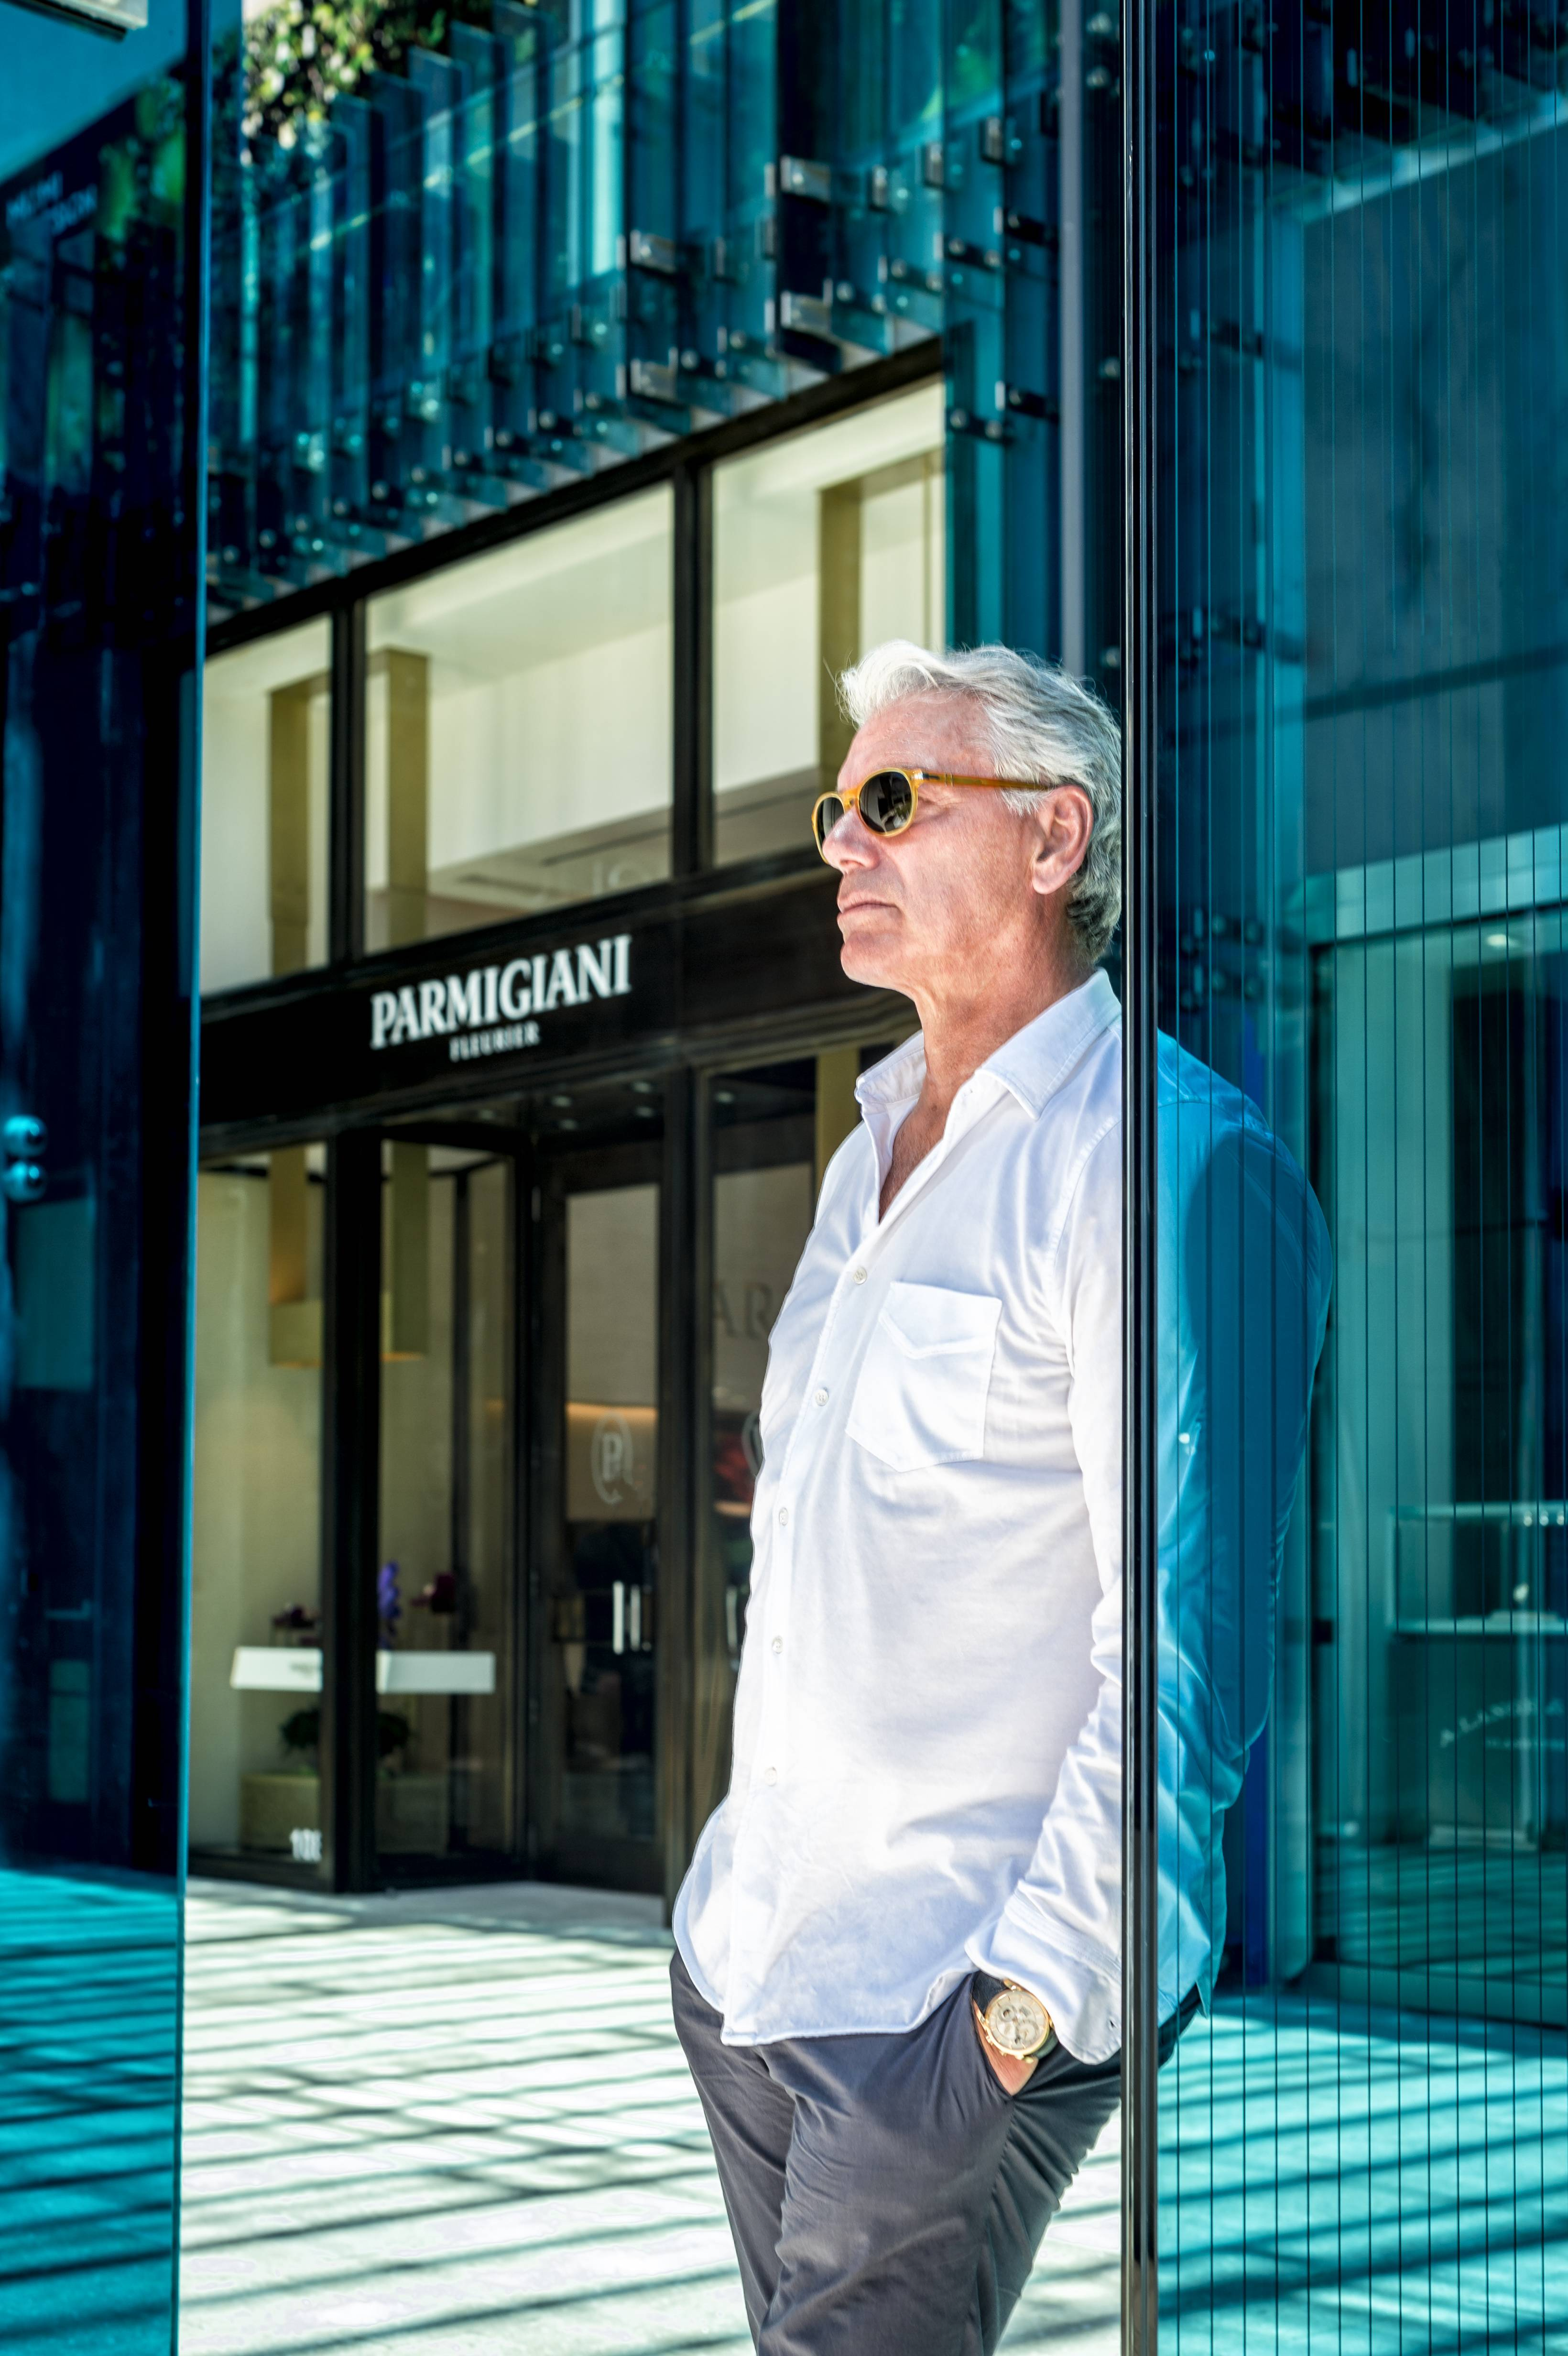 An Exclusive Interview With Jean-Marc Jacot, CEO Of Parmigiani Fleurier